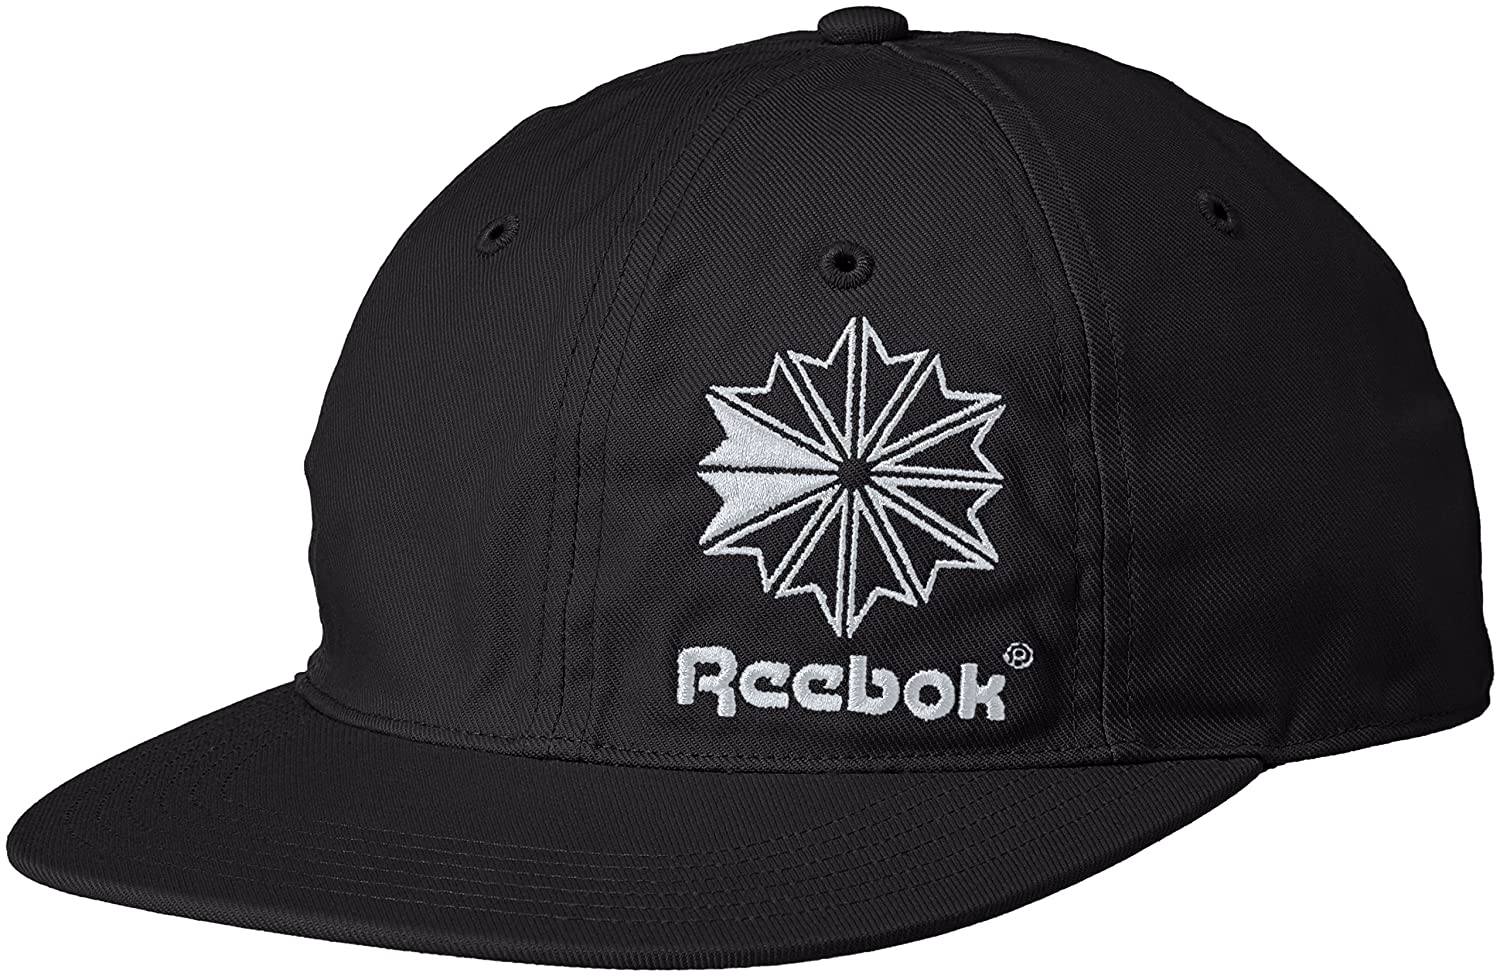 Reebok Crossfit classicclassics Iconic - Gorra - Black: Amazon.es ...